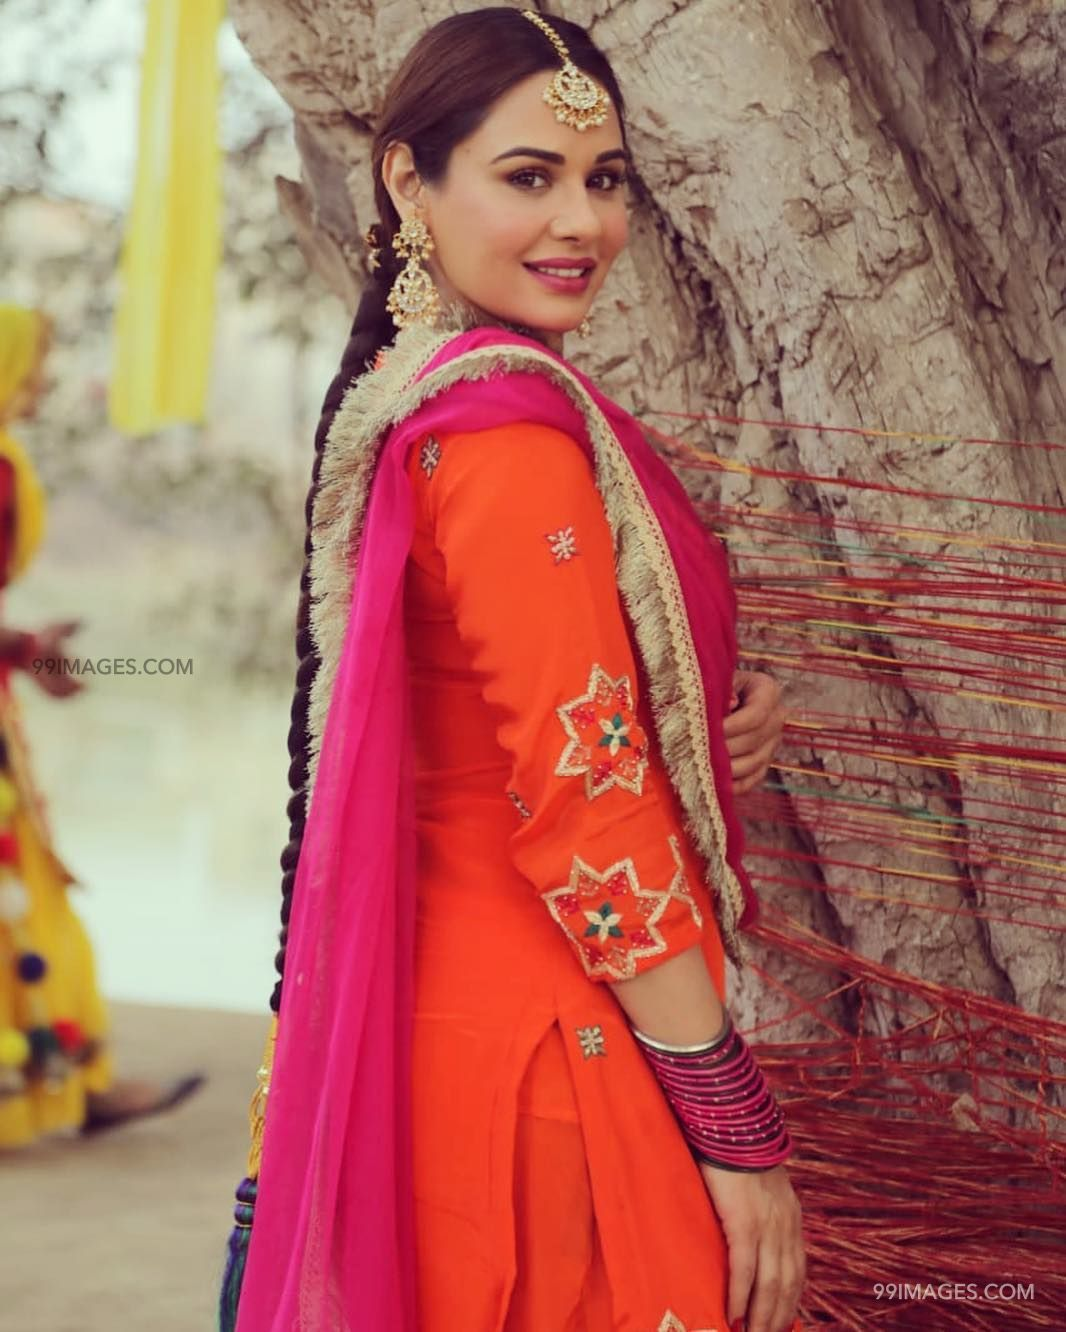 Mandy Takhar Beautiful HD Photos & Mobile Wallpapers HD (Android/iPhone) (1080p) (34105) - Mandy Takhar